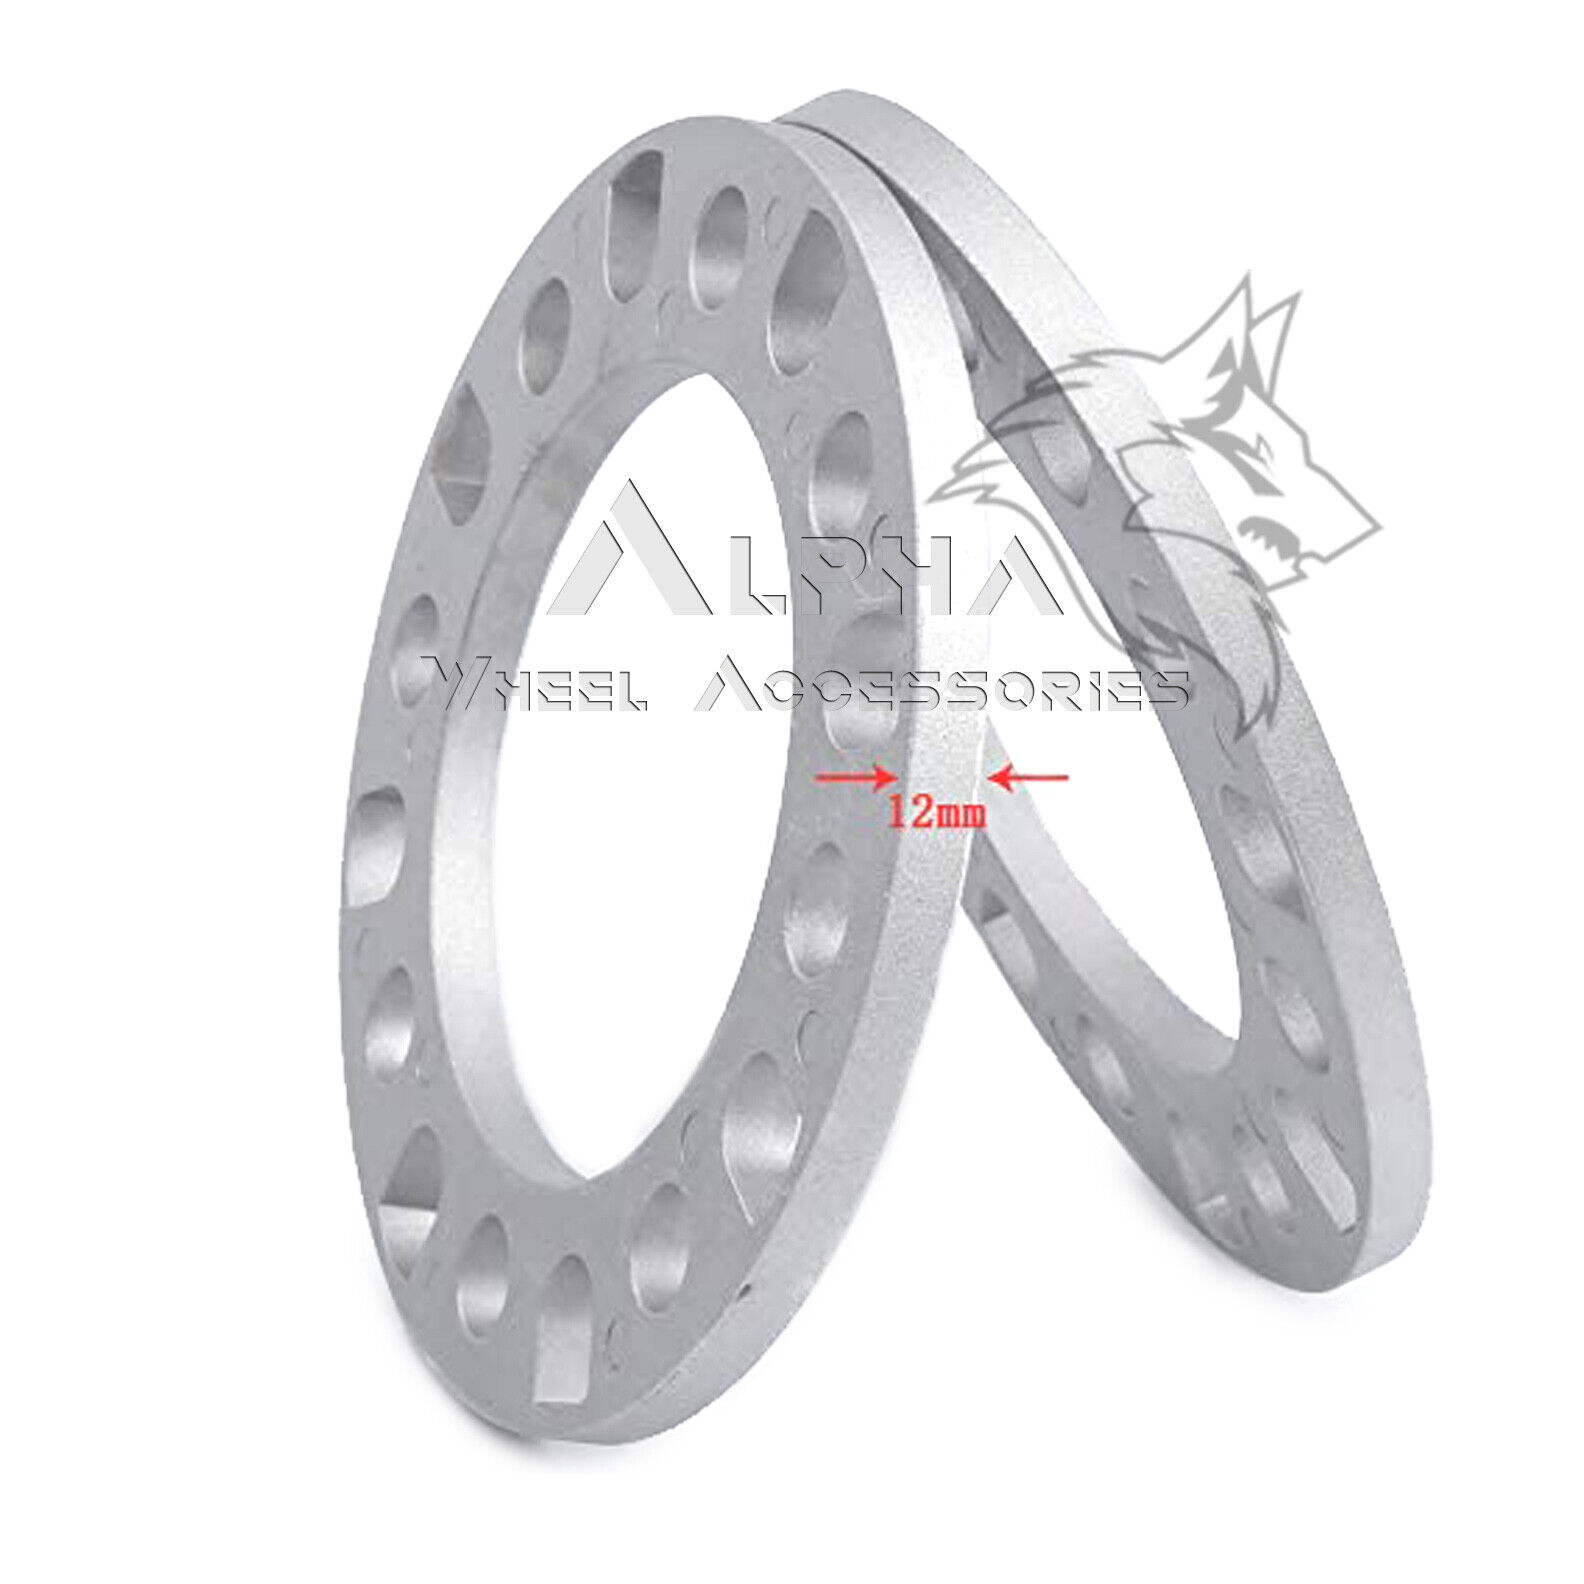 Wheel Spacer Adapters For Dodge Ram 2500 3500-8x165.1 to 8x180mm Conversion